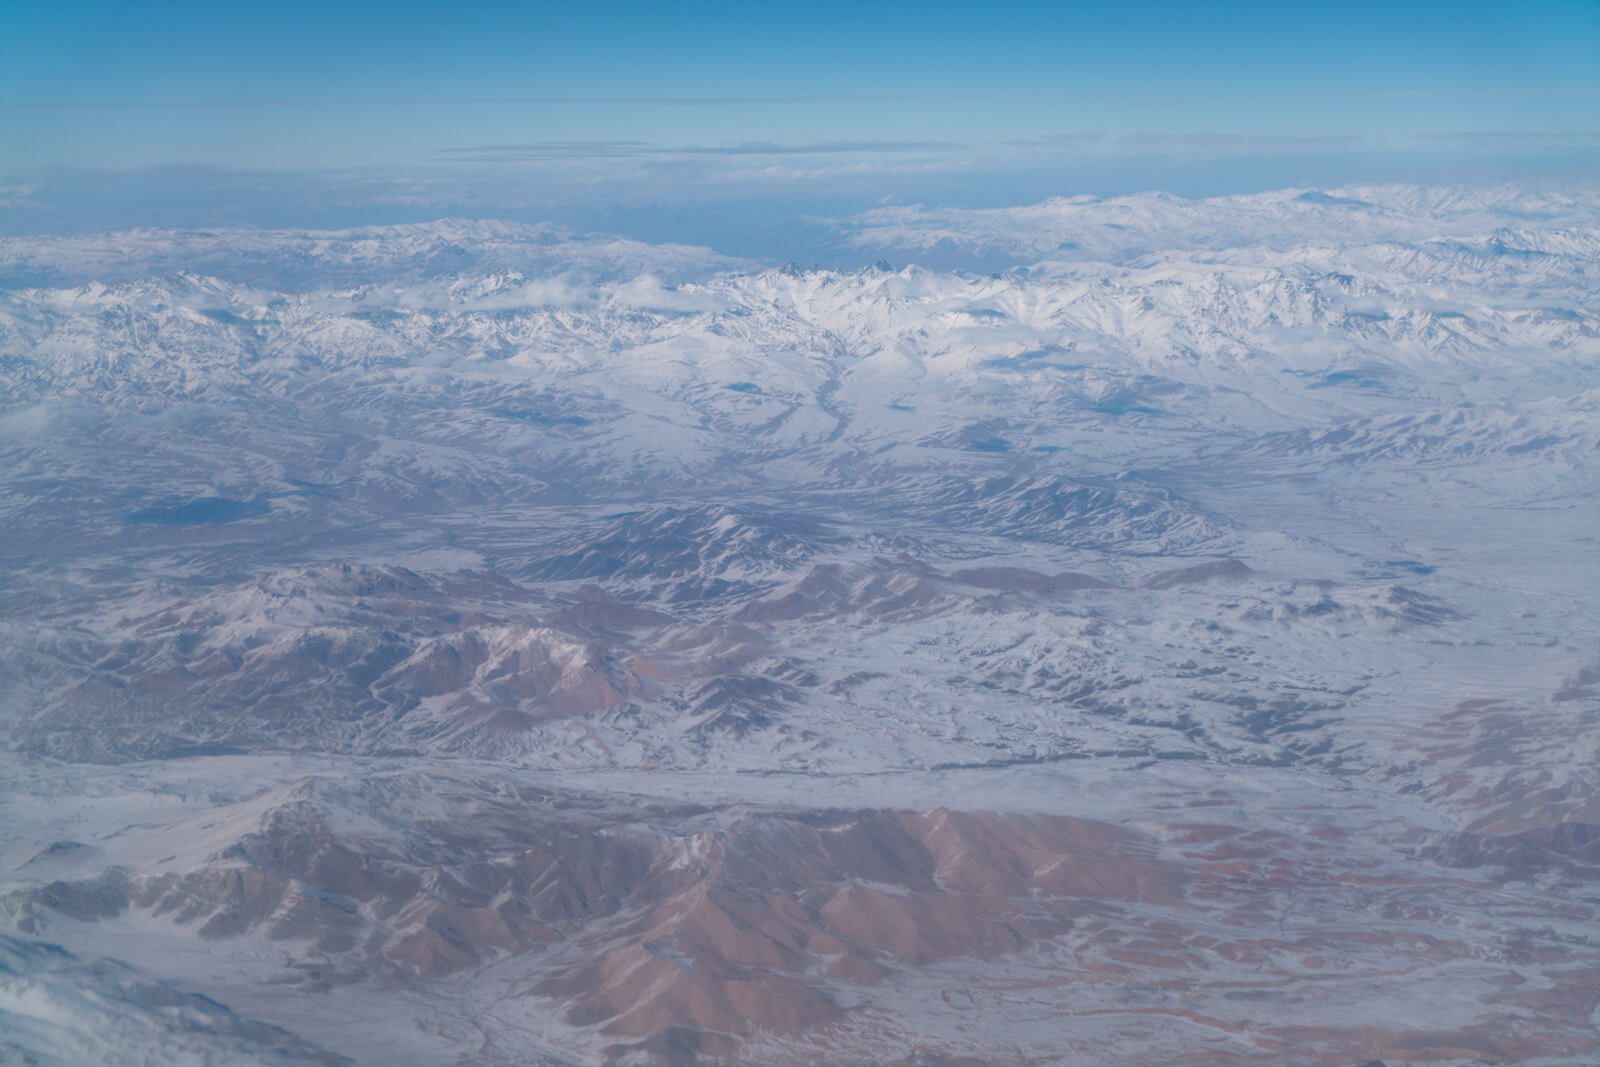 Aerial View of the Bamyan province of Afghanistan, famous for its skiing